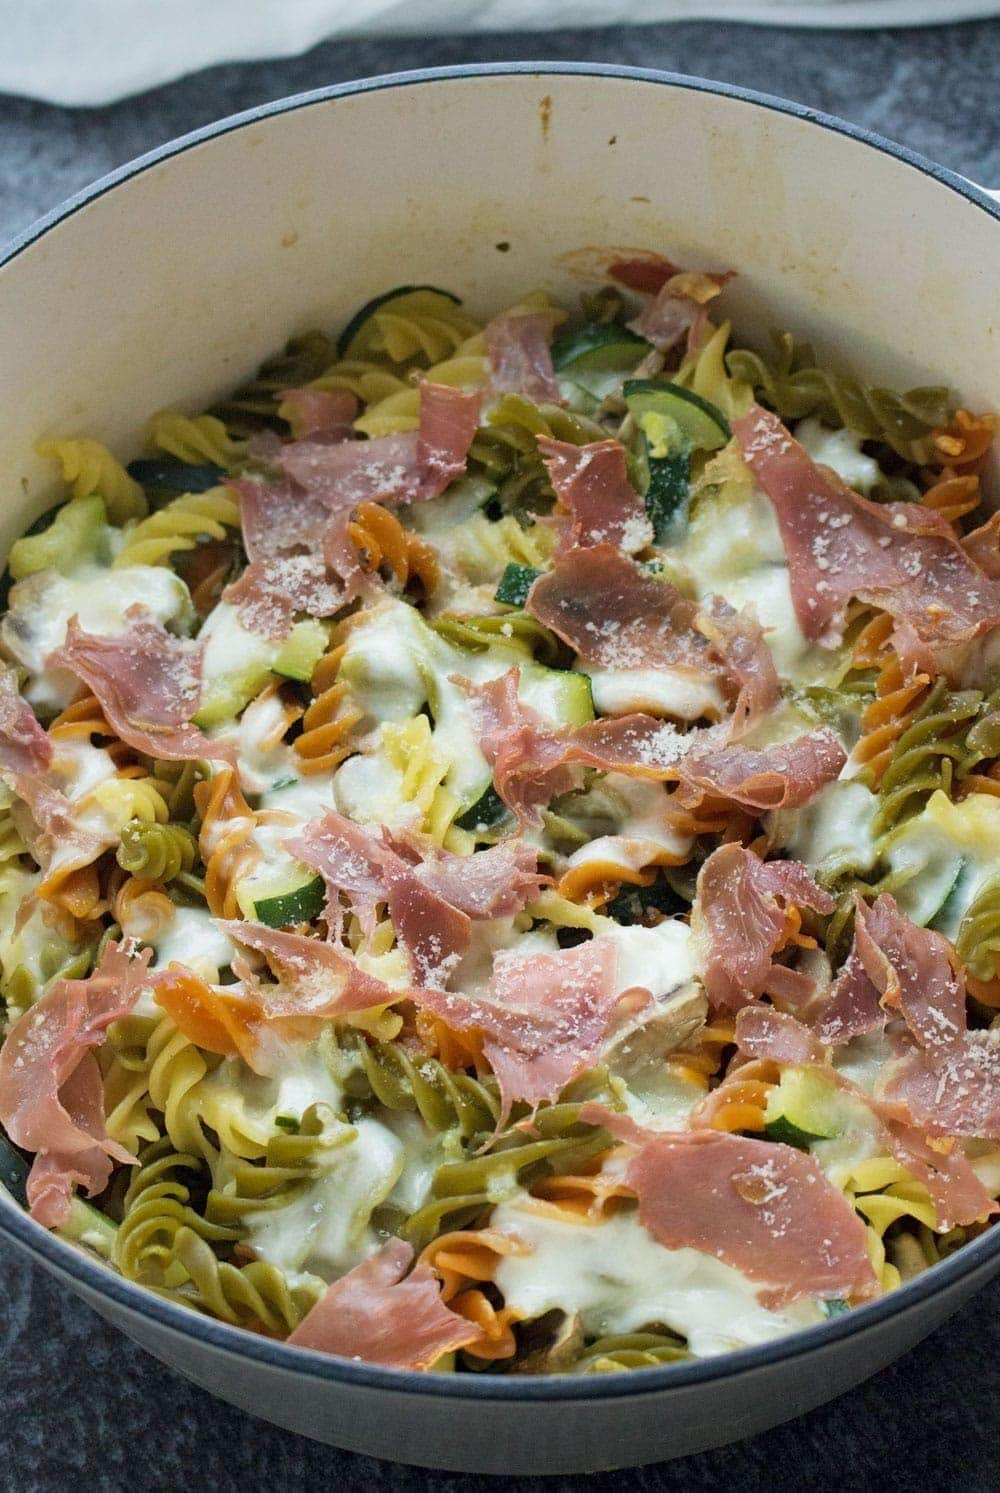 This courgette & prosciutto one pot pasta recipe is so quick and easy. Throw everything in the pot and 20 minutes later you've got dinner on the table!